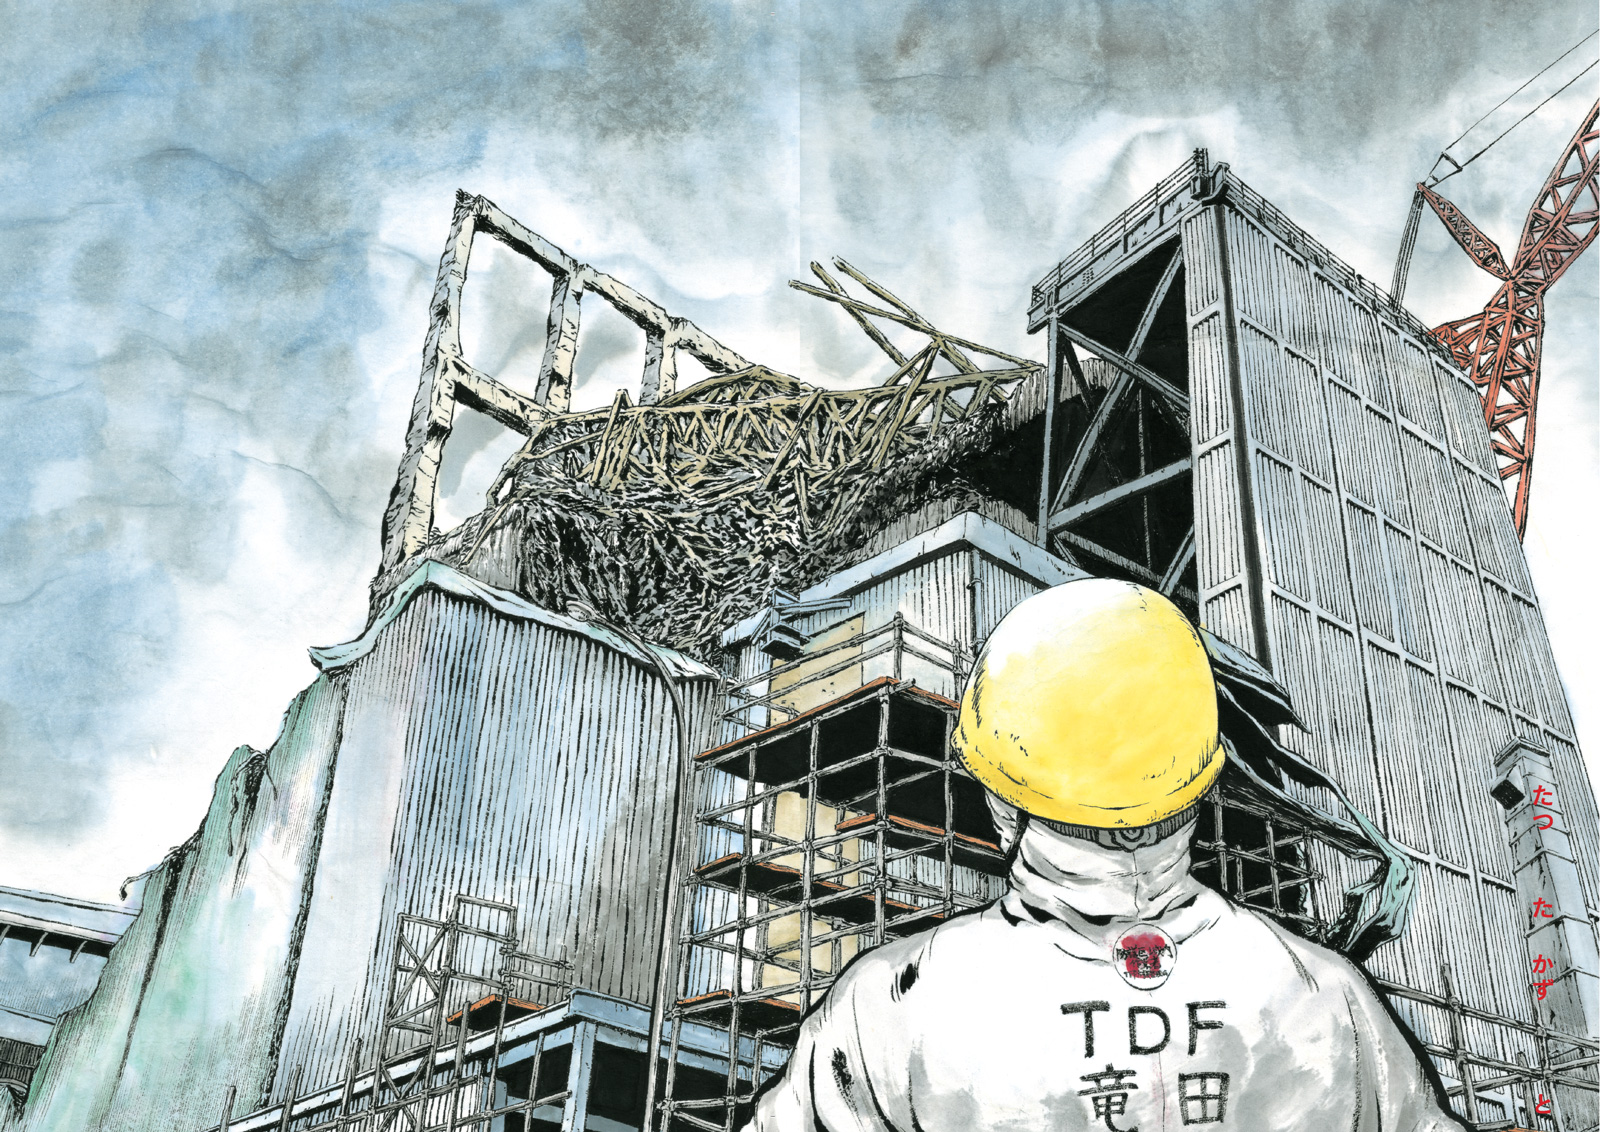 A spread from Kazuto Tatsuta's Ichi-F: A Worker's Graphic Memoir of the Fukushima Nuclear Power Plant, 2017